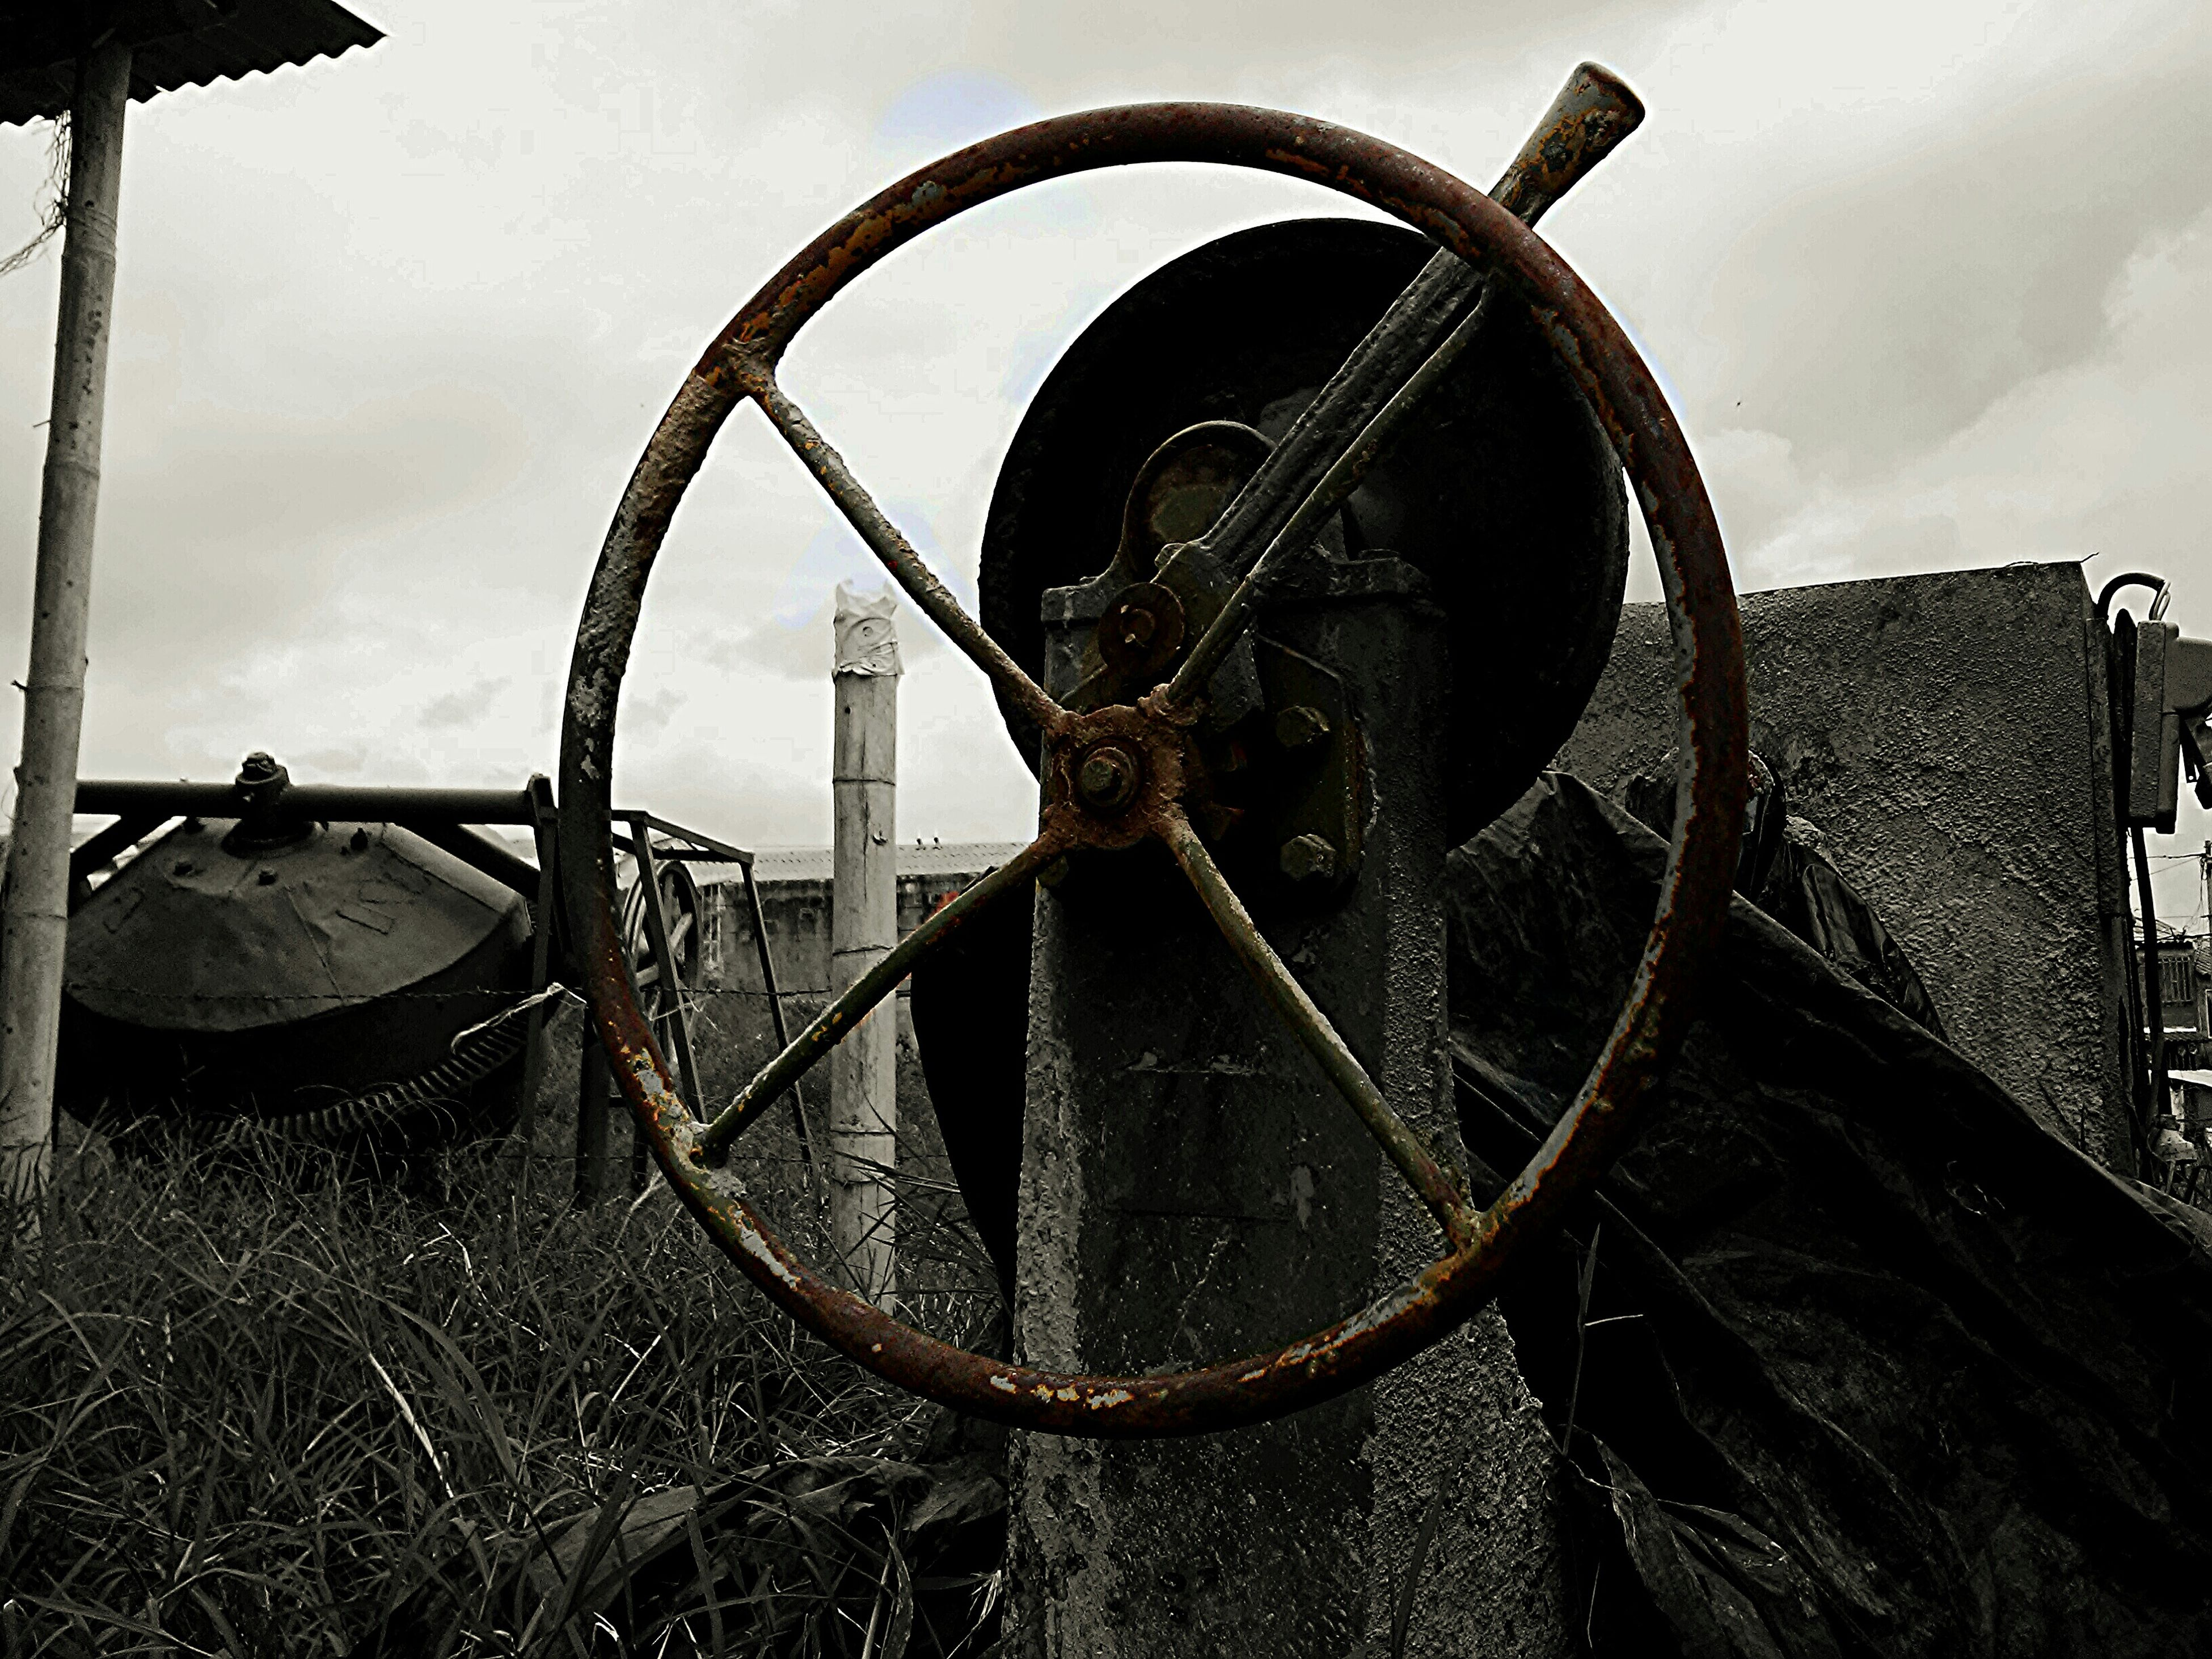 sky, metal, rusty, building exterior, cloud - sky, built structure, architecture, old, day, safety, abandoned, protection, outdoors, transportation, obsolete, security, damaged, old-fashioned, wheel, metallic